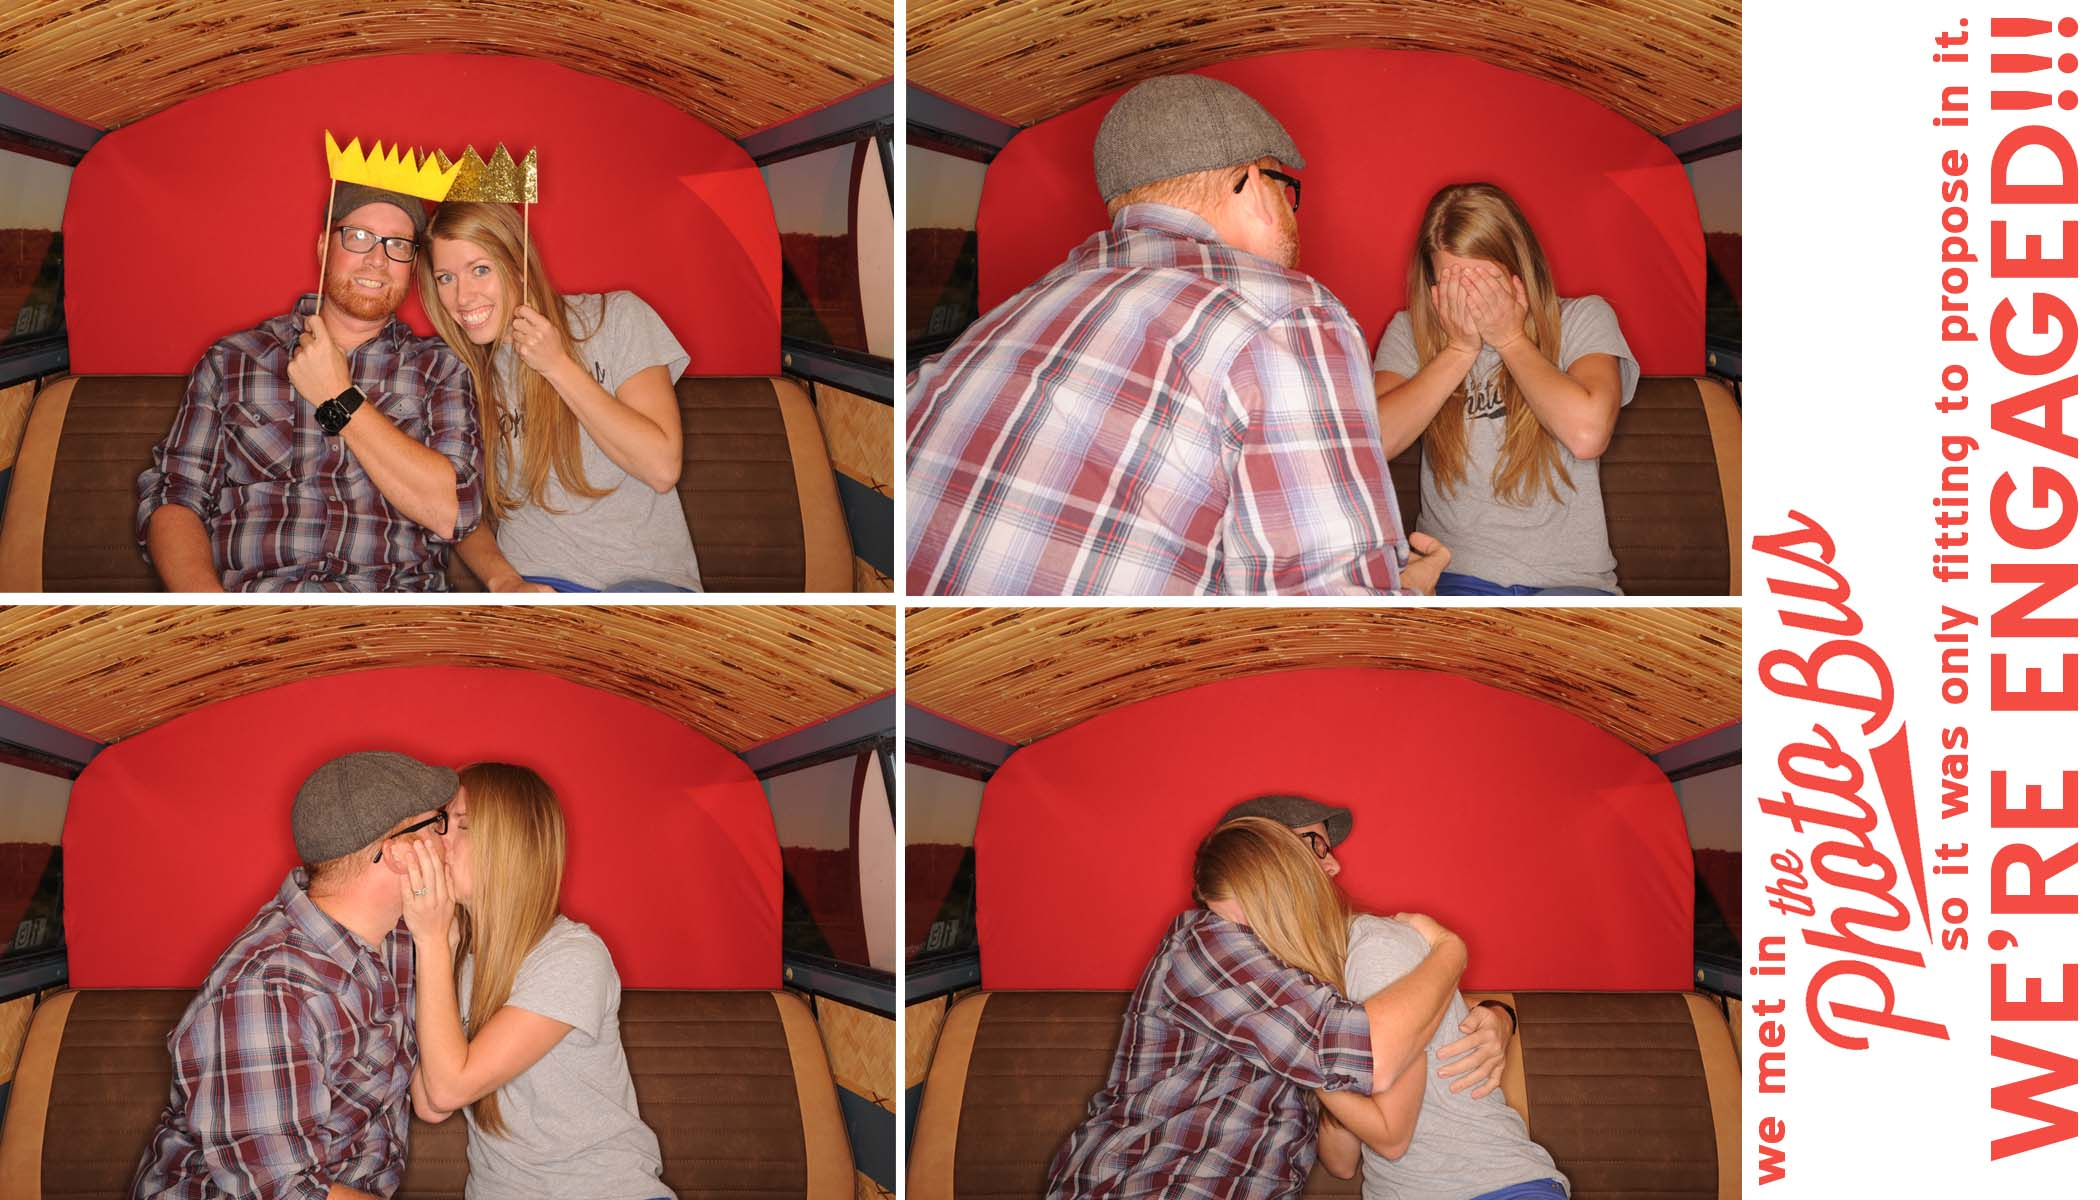 Cute-Photo-Booth-Proposal-Idea-ThePhotoBus-John-and-Cate